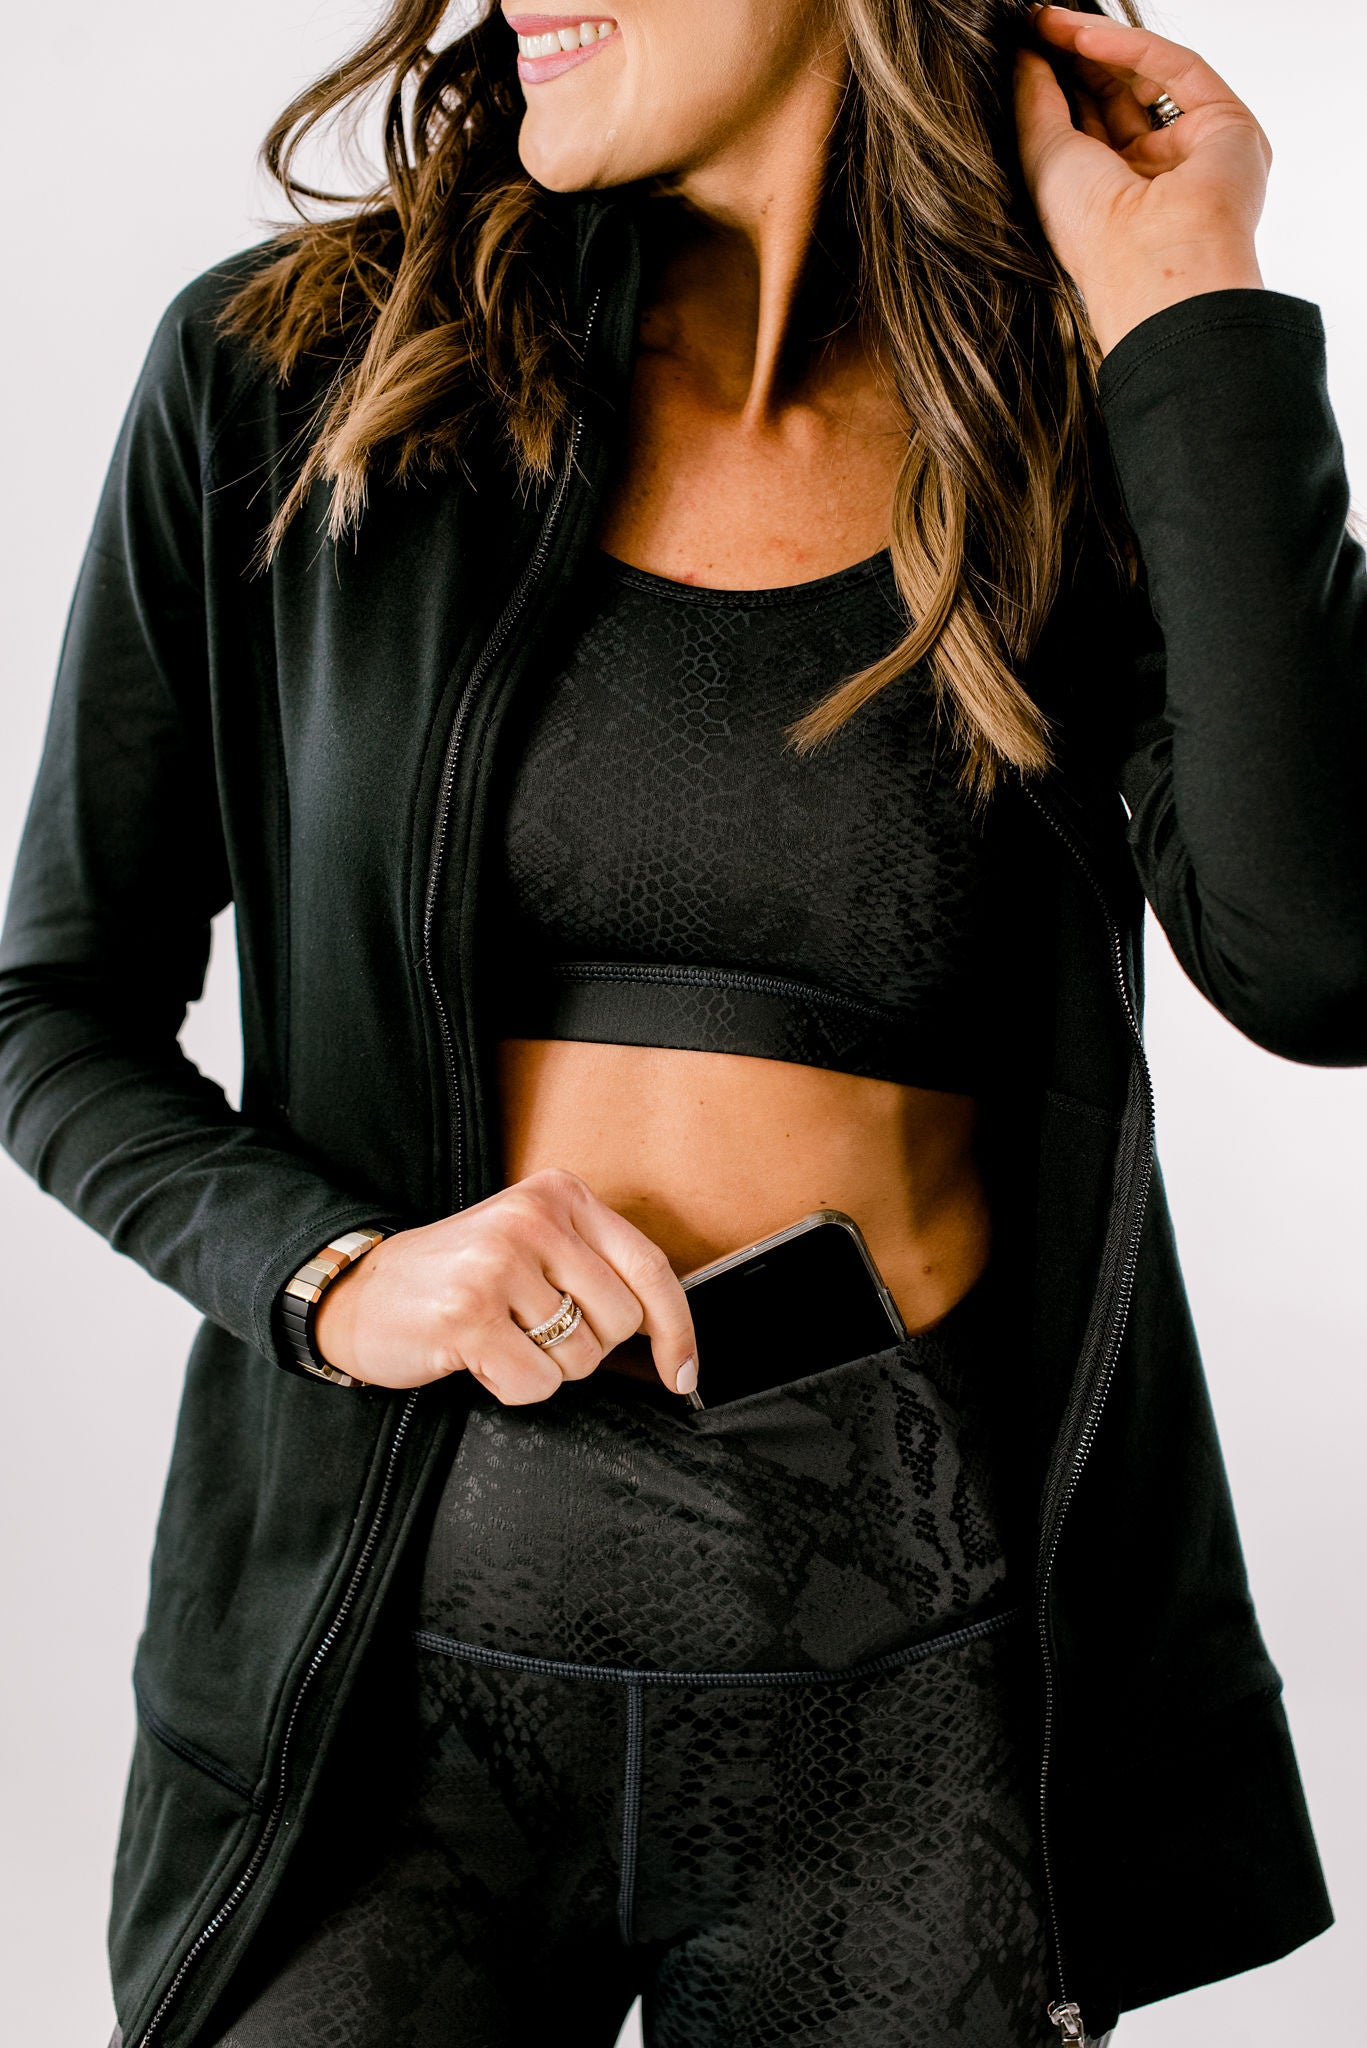 Black Scale Activewear Leggings